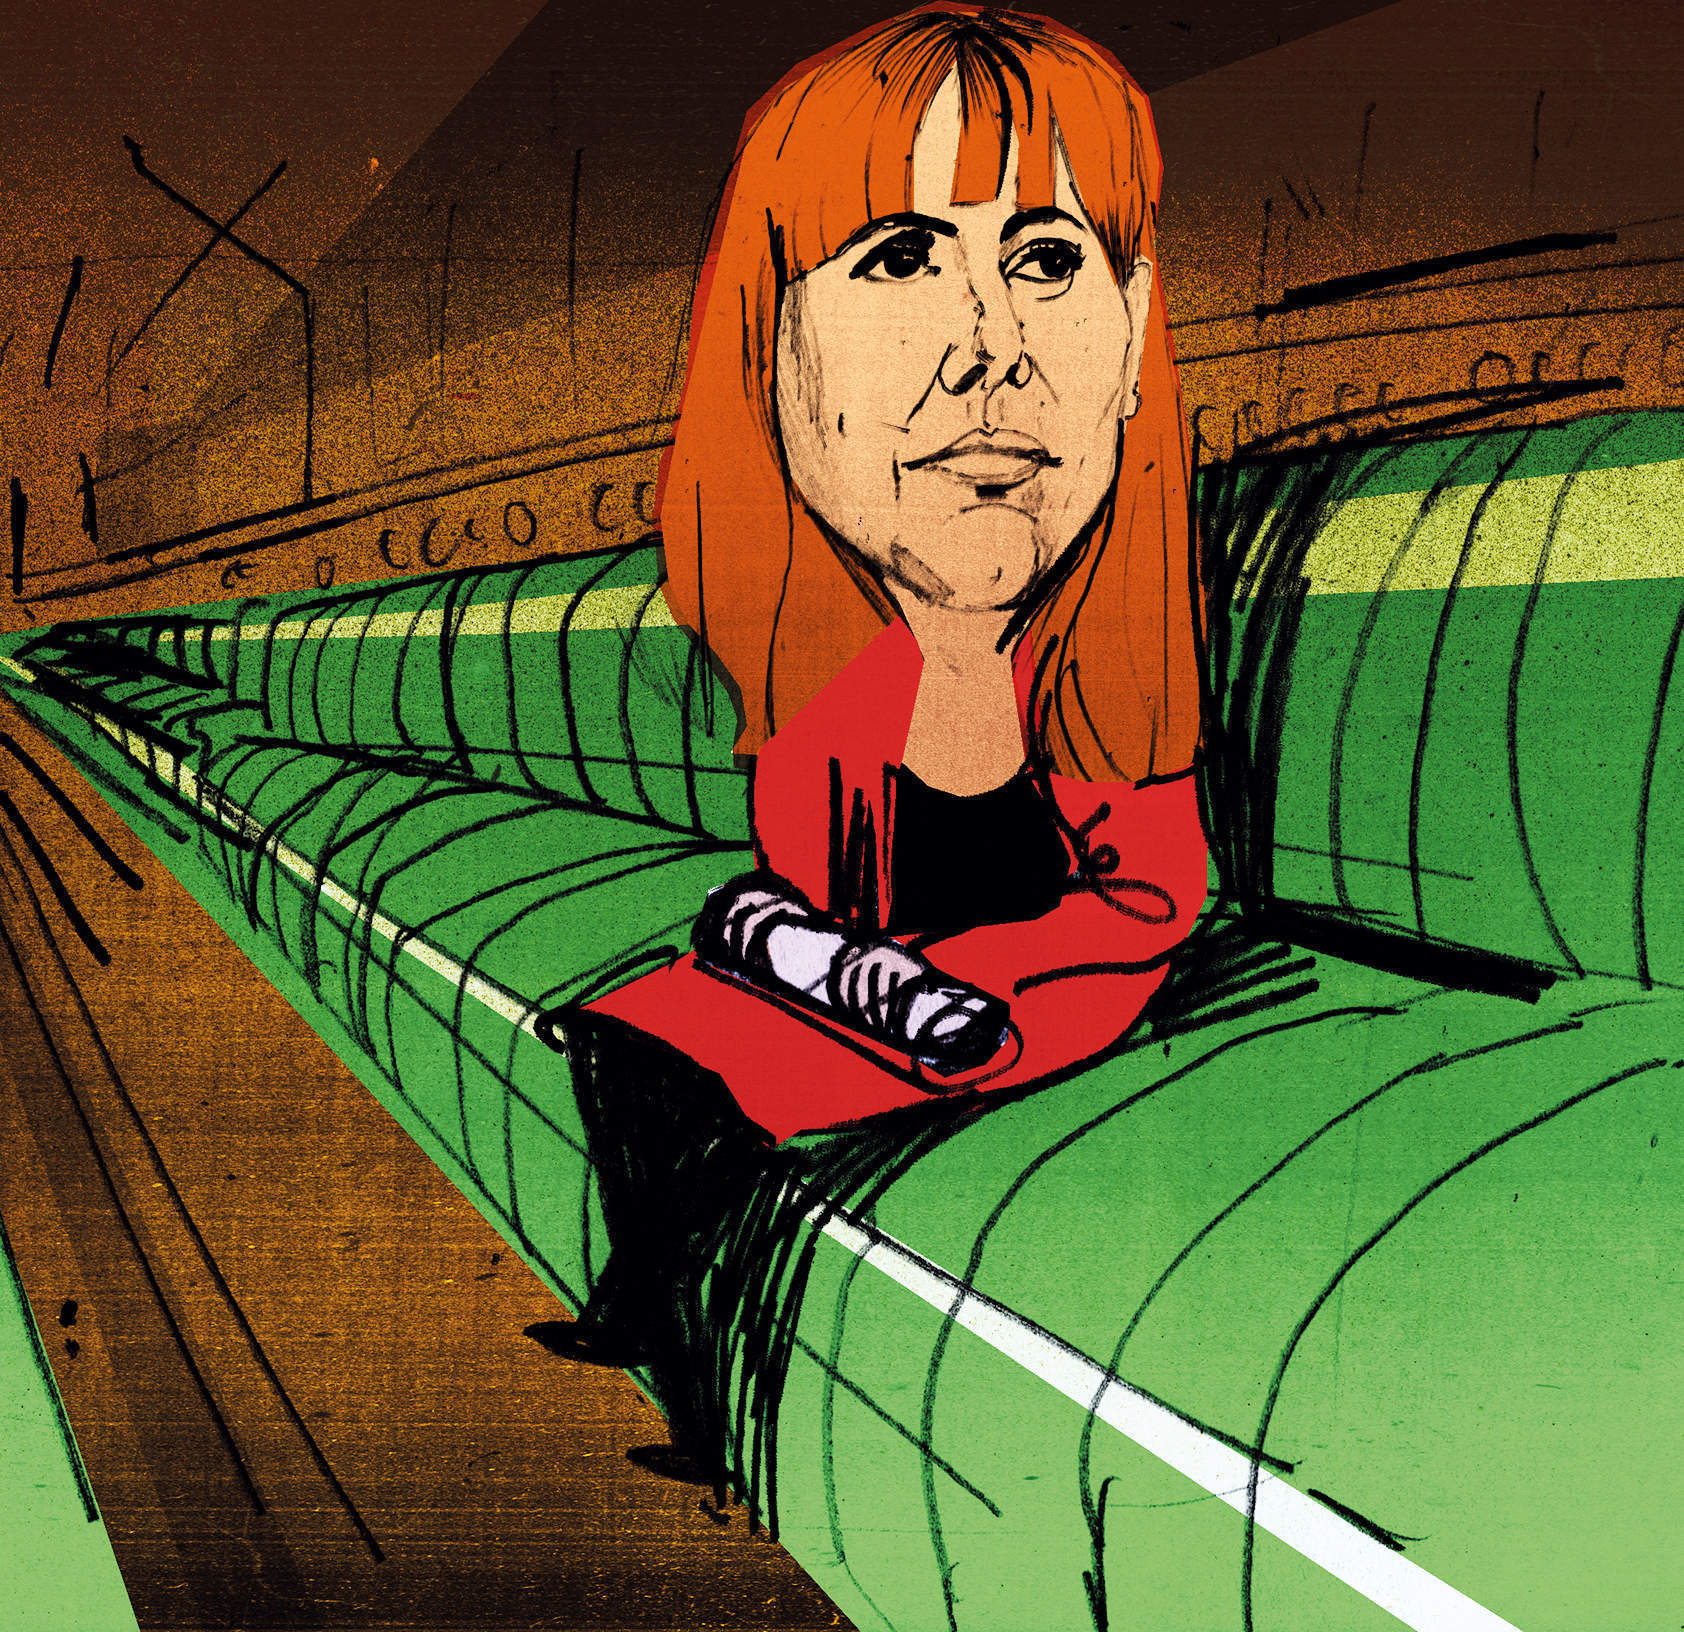 The irresistible rise of Angela Rayner